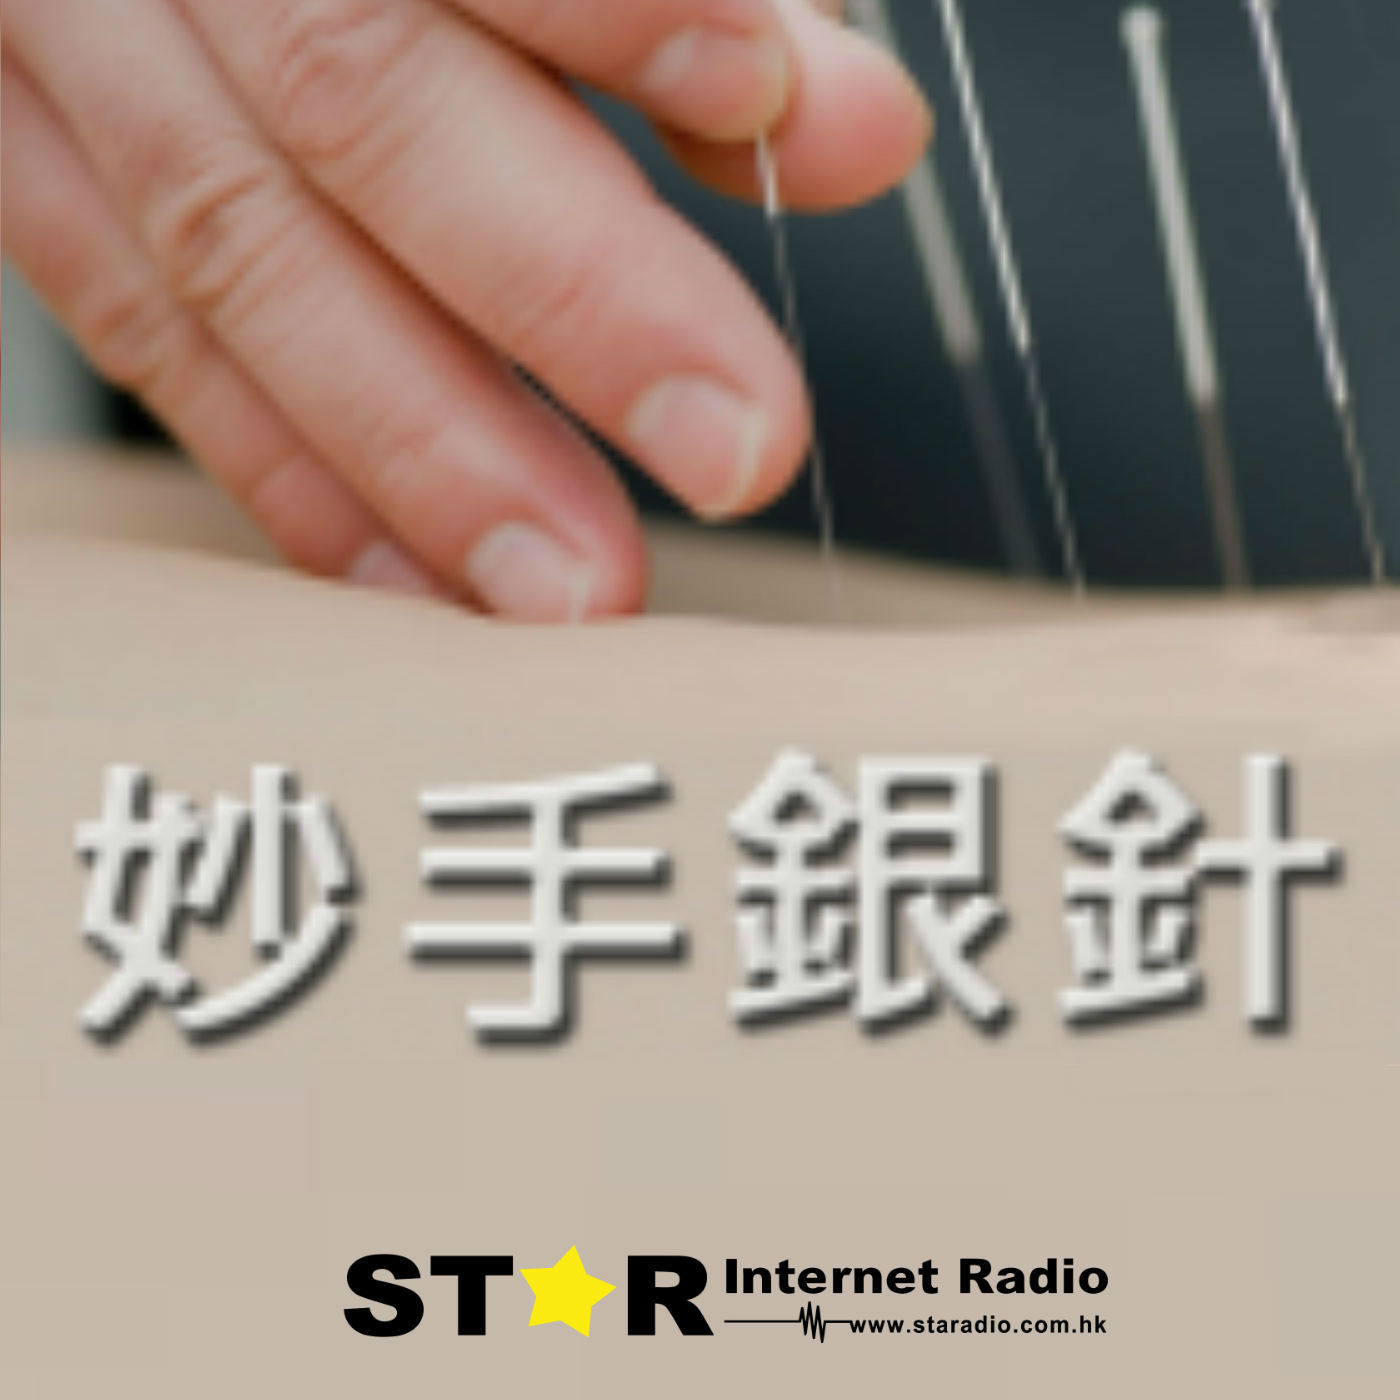 星滙網 Star Internet Radio » 妙手銀針